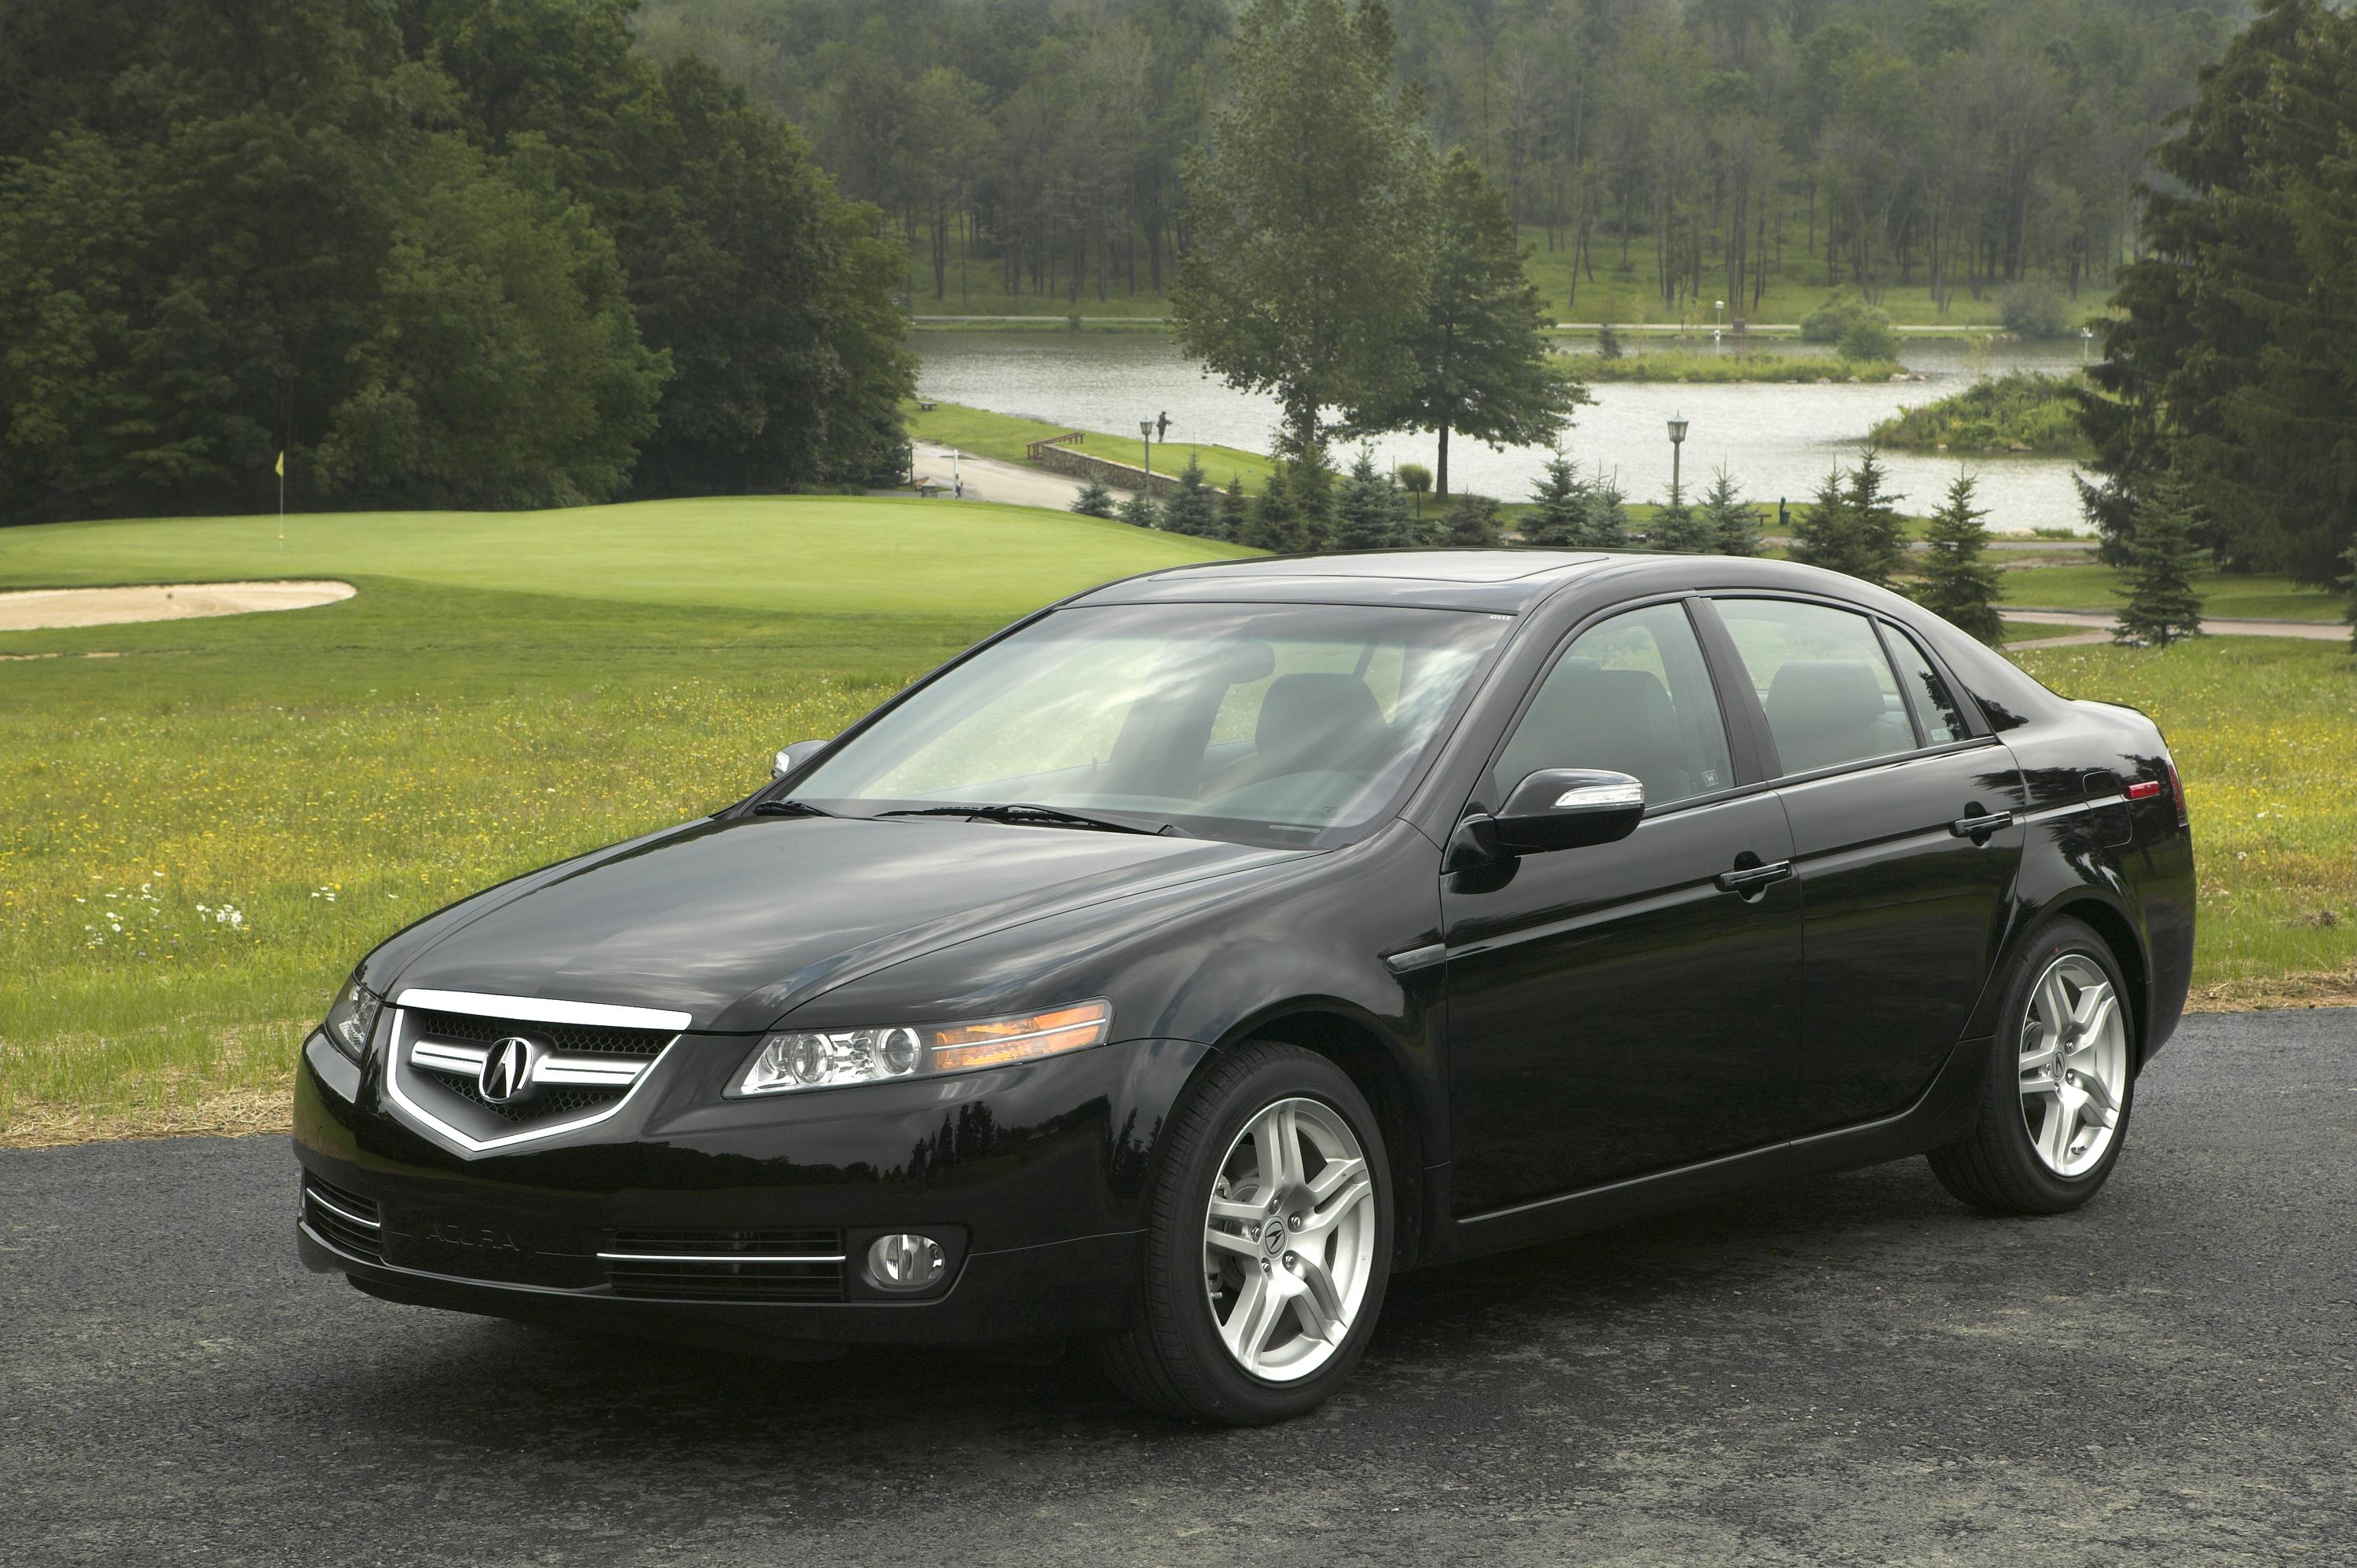 2007 acura tl top speed. Black Bedroom Furniture Sets. Home Design Ideas